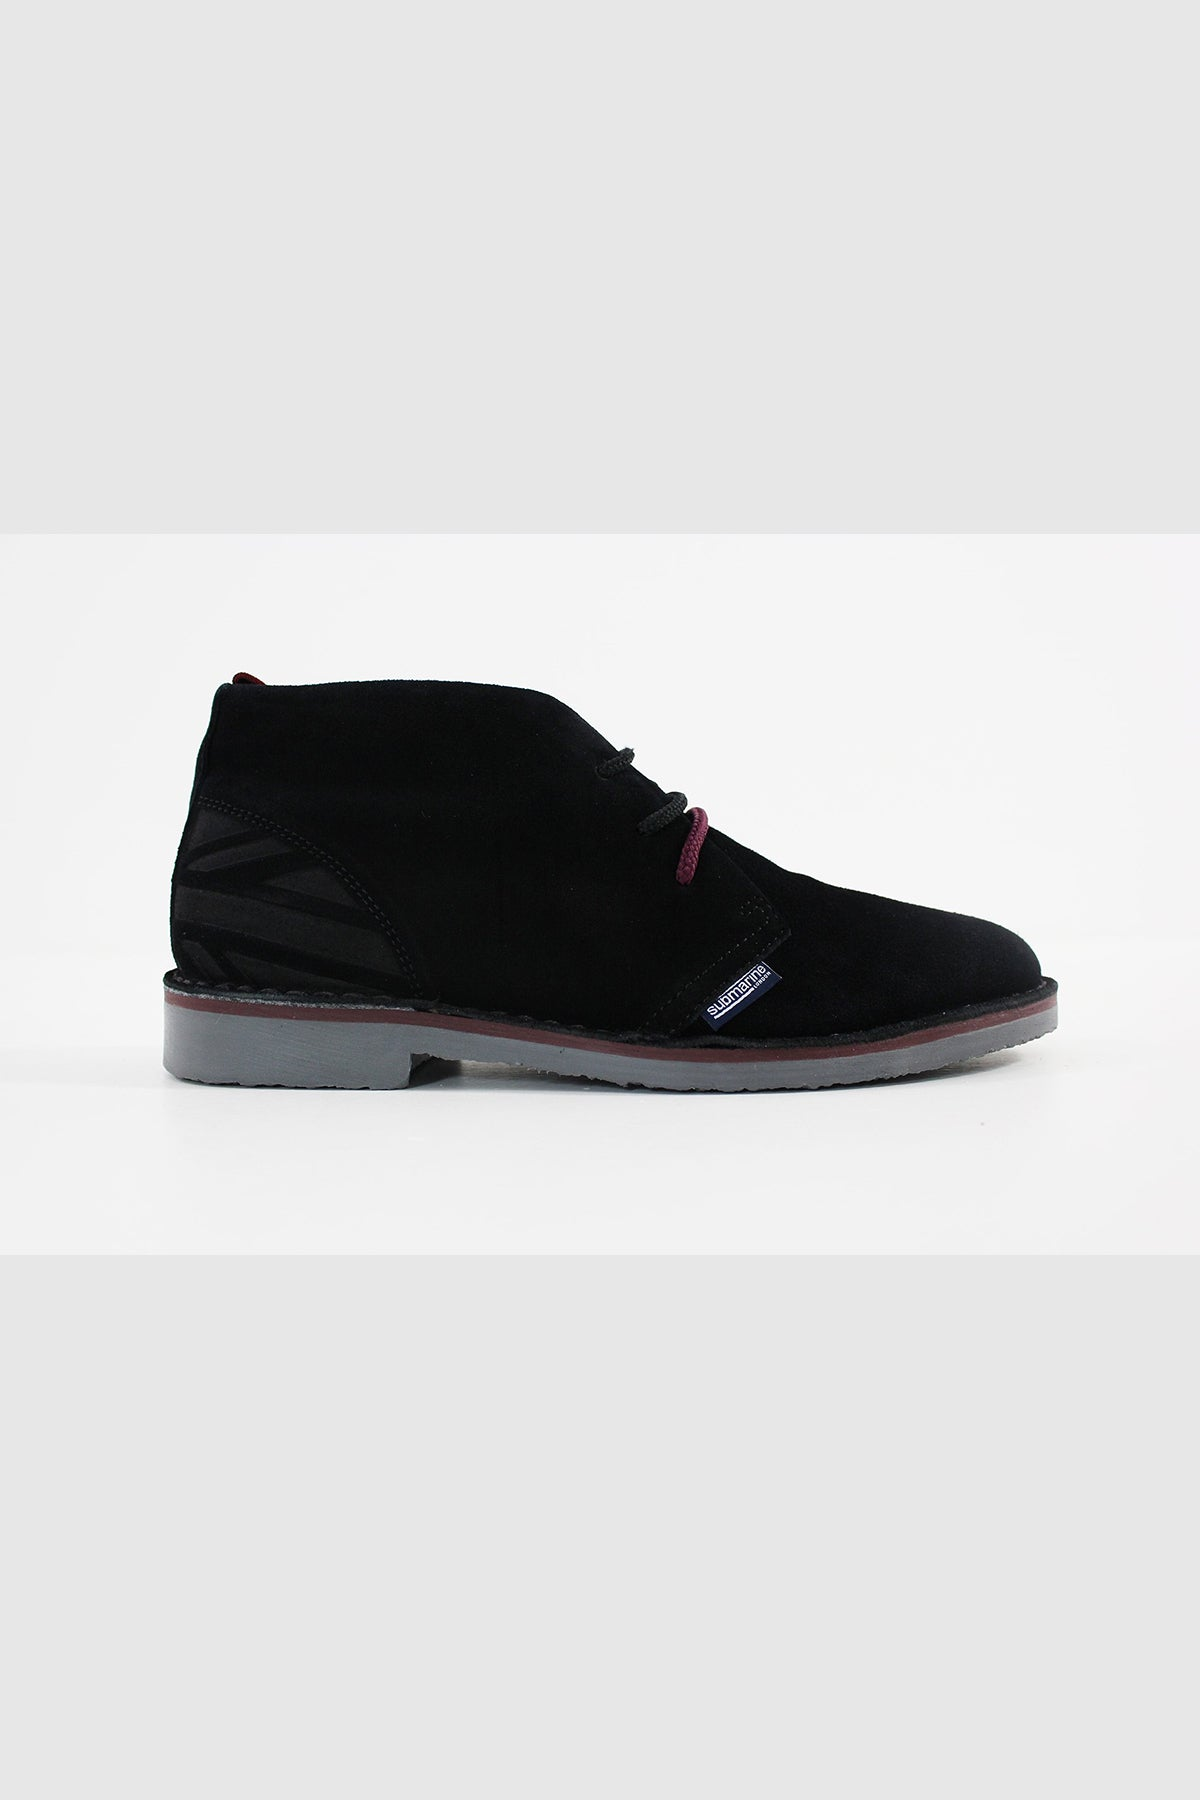 Submarine London - NEW MANCHESTER SUEDE UNISEX (BLACK-CREMISI)